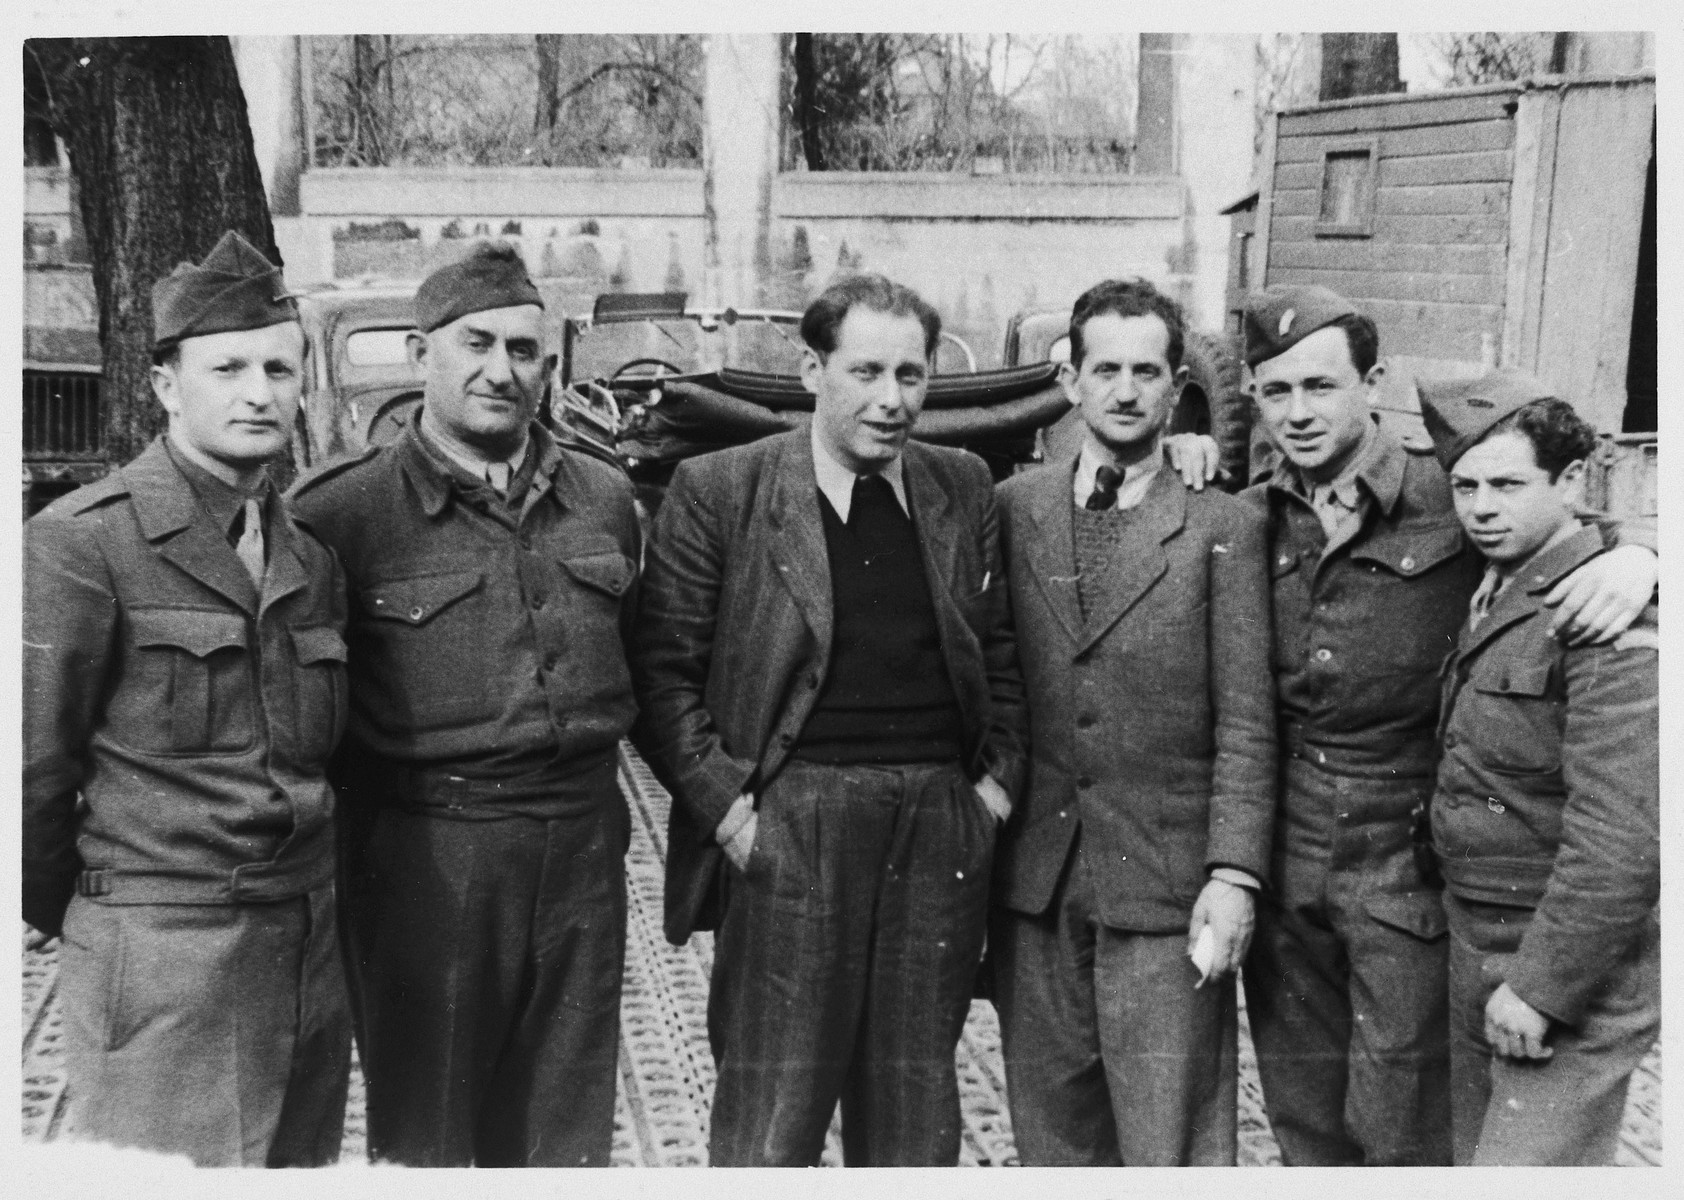 Group portrait of JDC employees at a warehouse in Munich.  Pictured from left to right are: Wolf Leizerowitz, Alte Berger, Isroel Ipp, Spilka, unidentified and Loke Karklin.